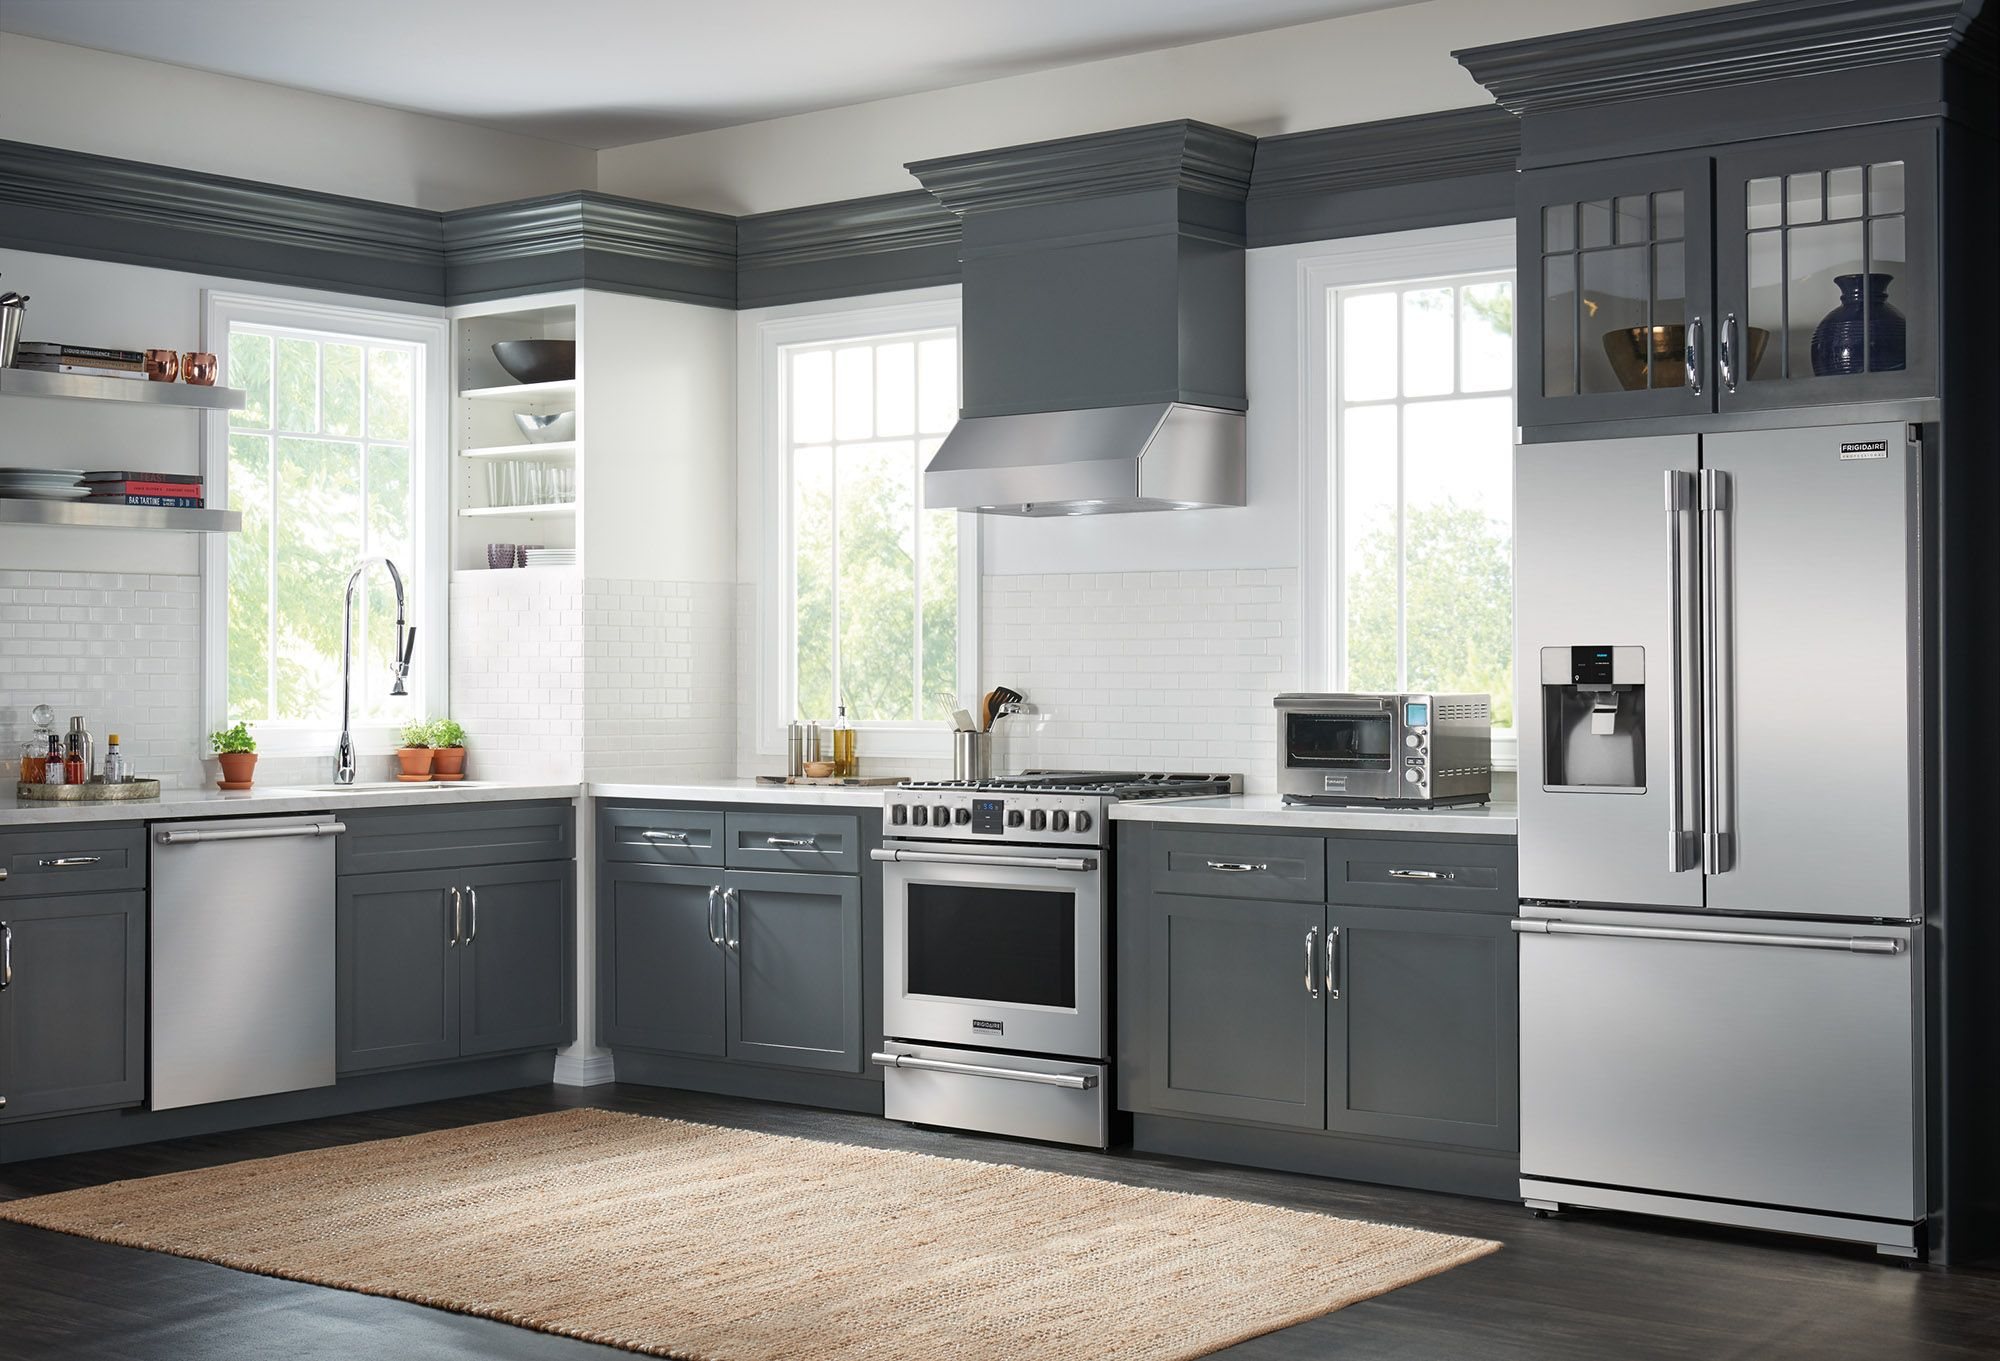 professional kitchen appliances white cabinets and backsplash take your to another level with frigidaire receive a 500 mail in rebate through november 30th